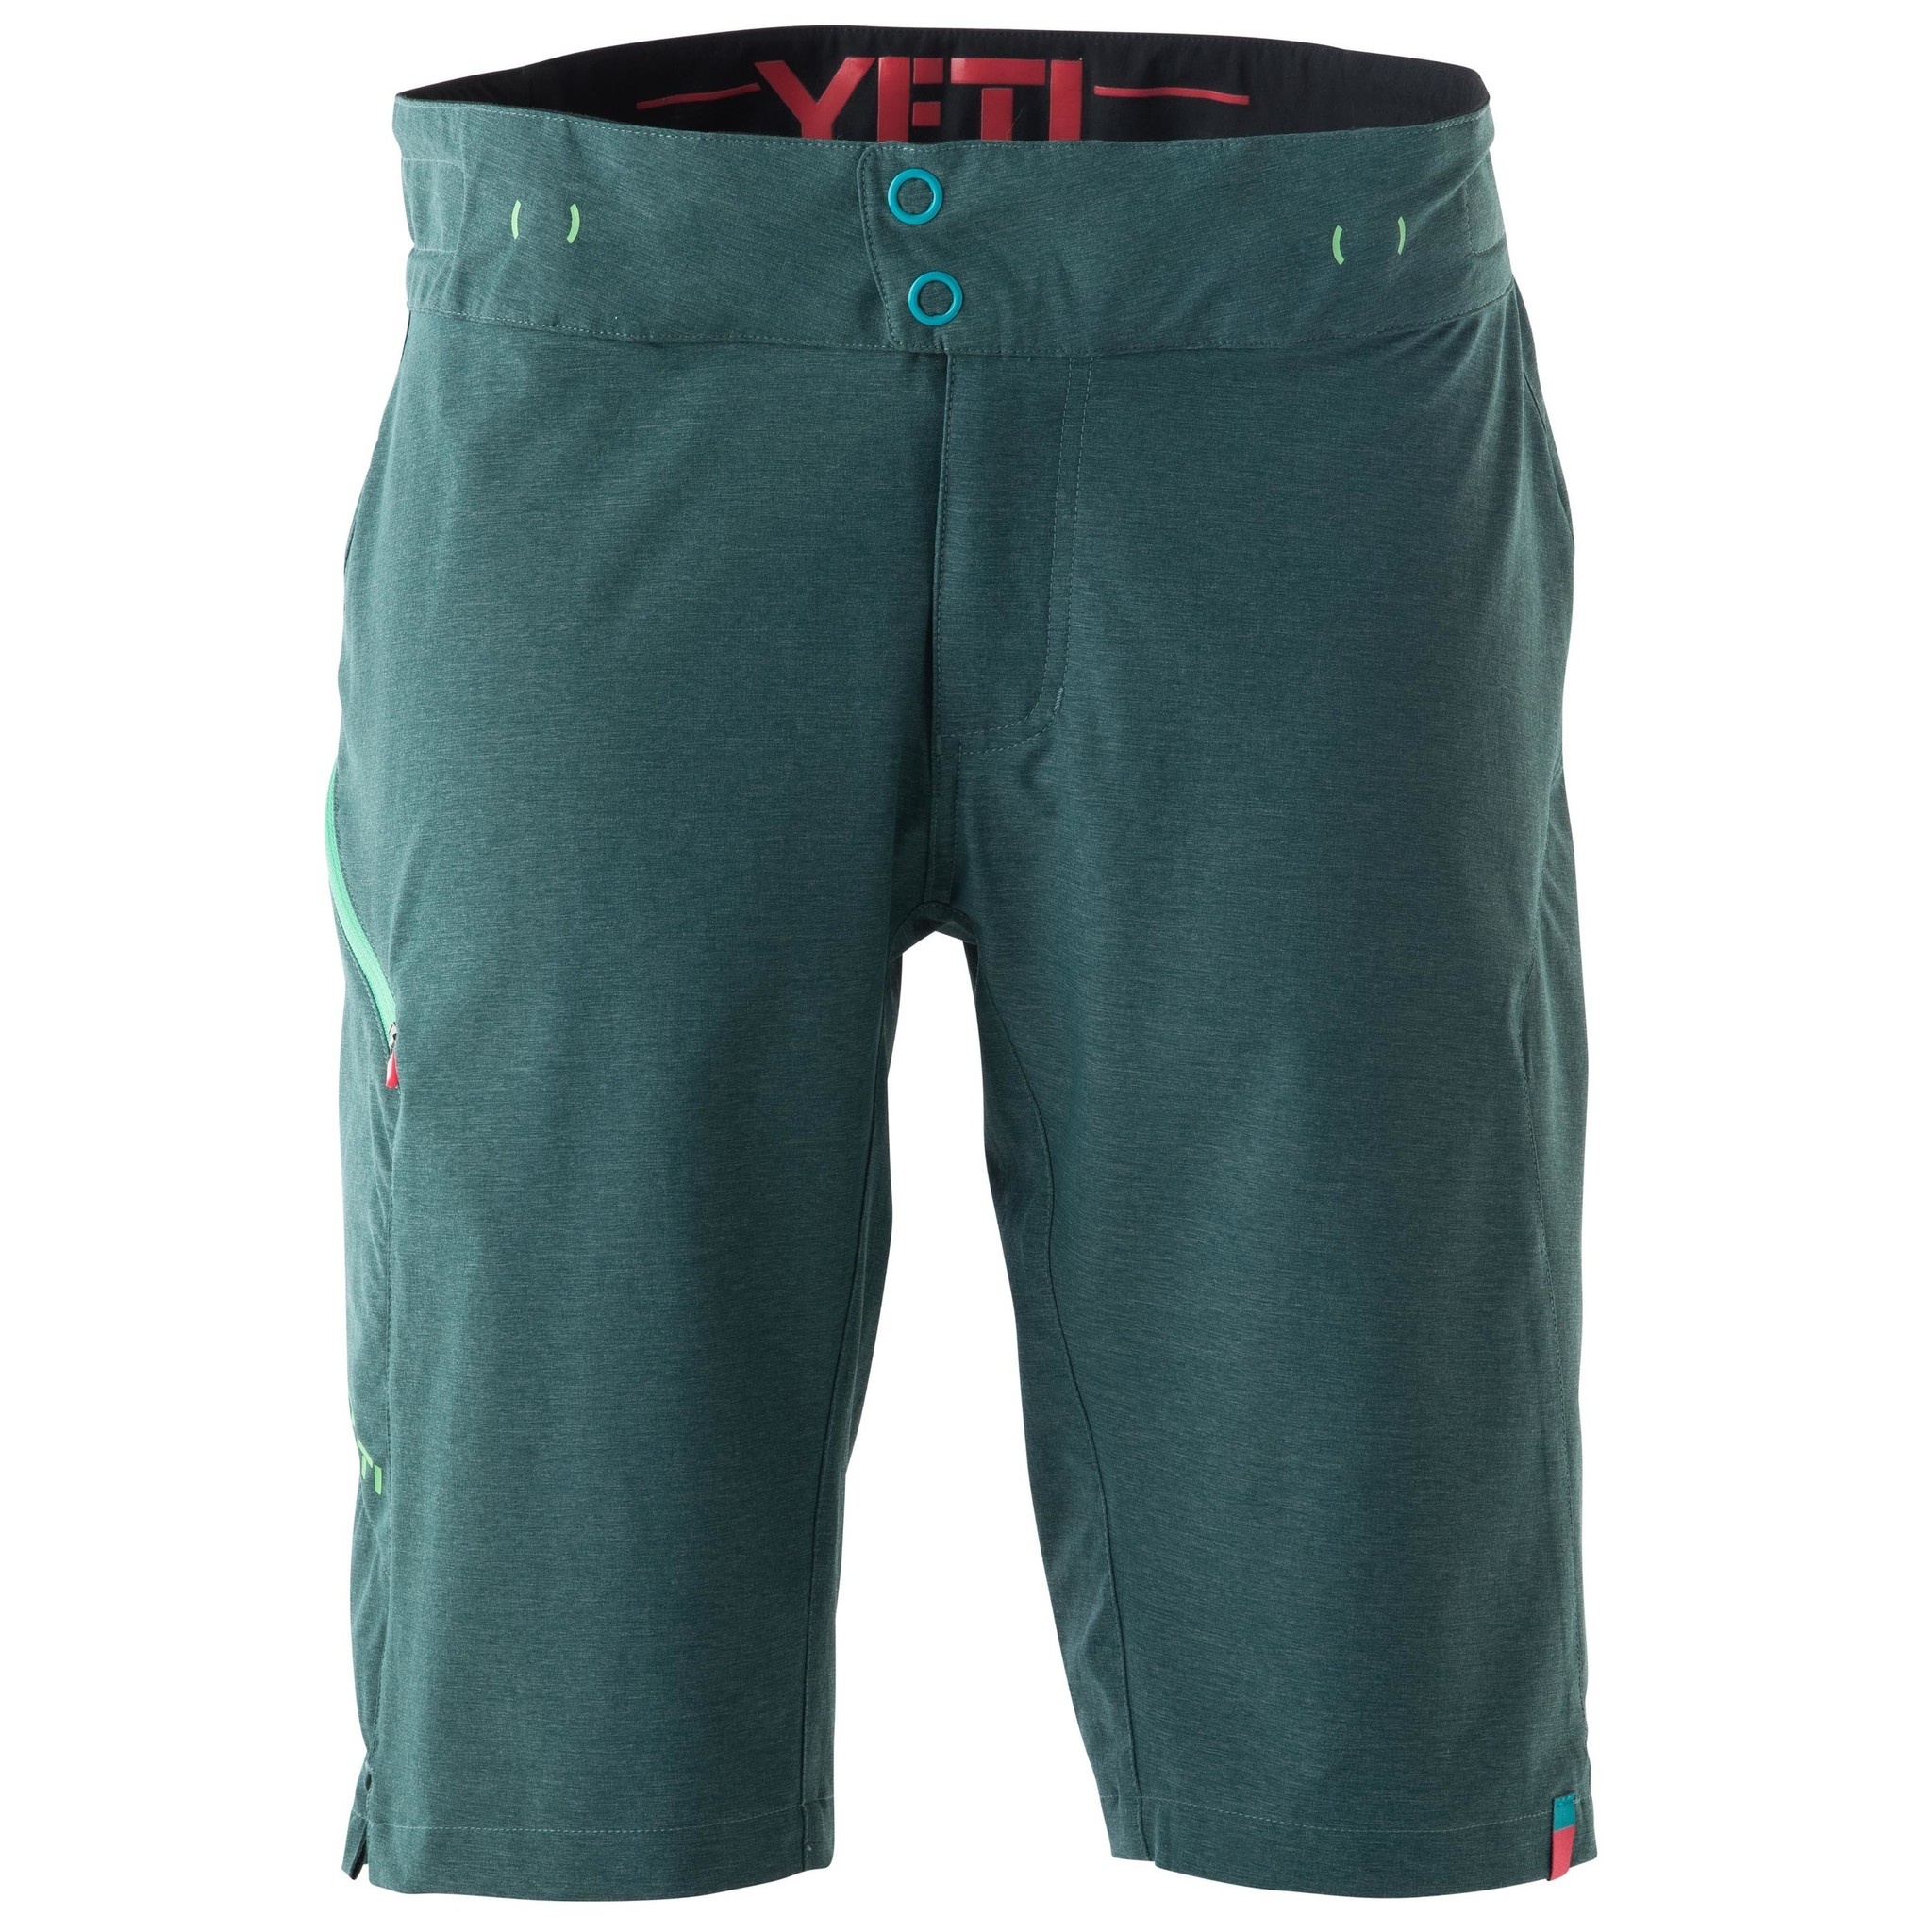 Yeti Cycles Yeti Avery short